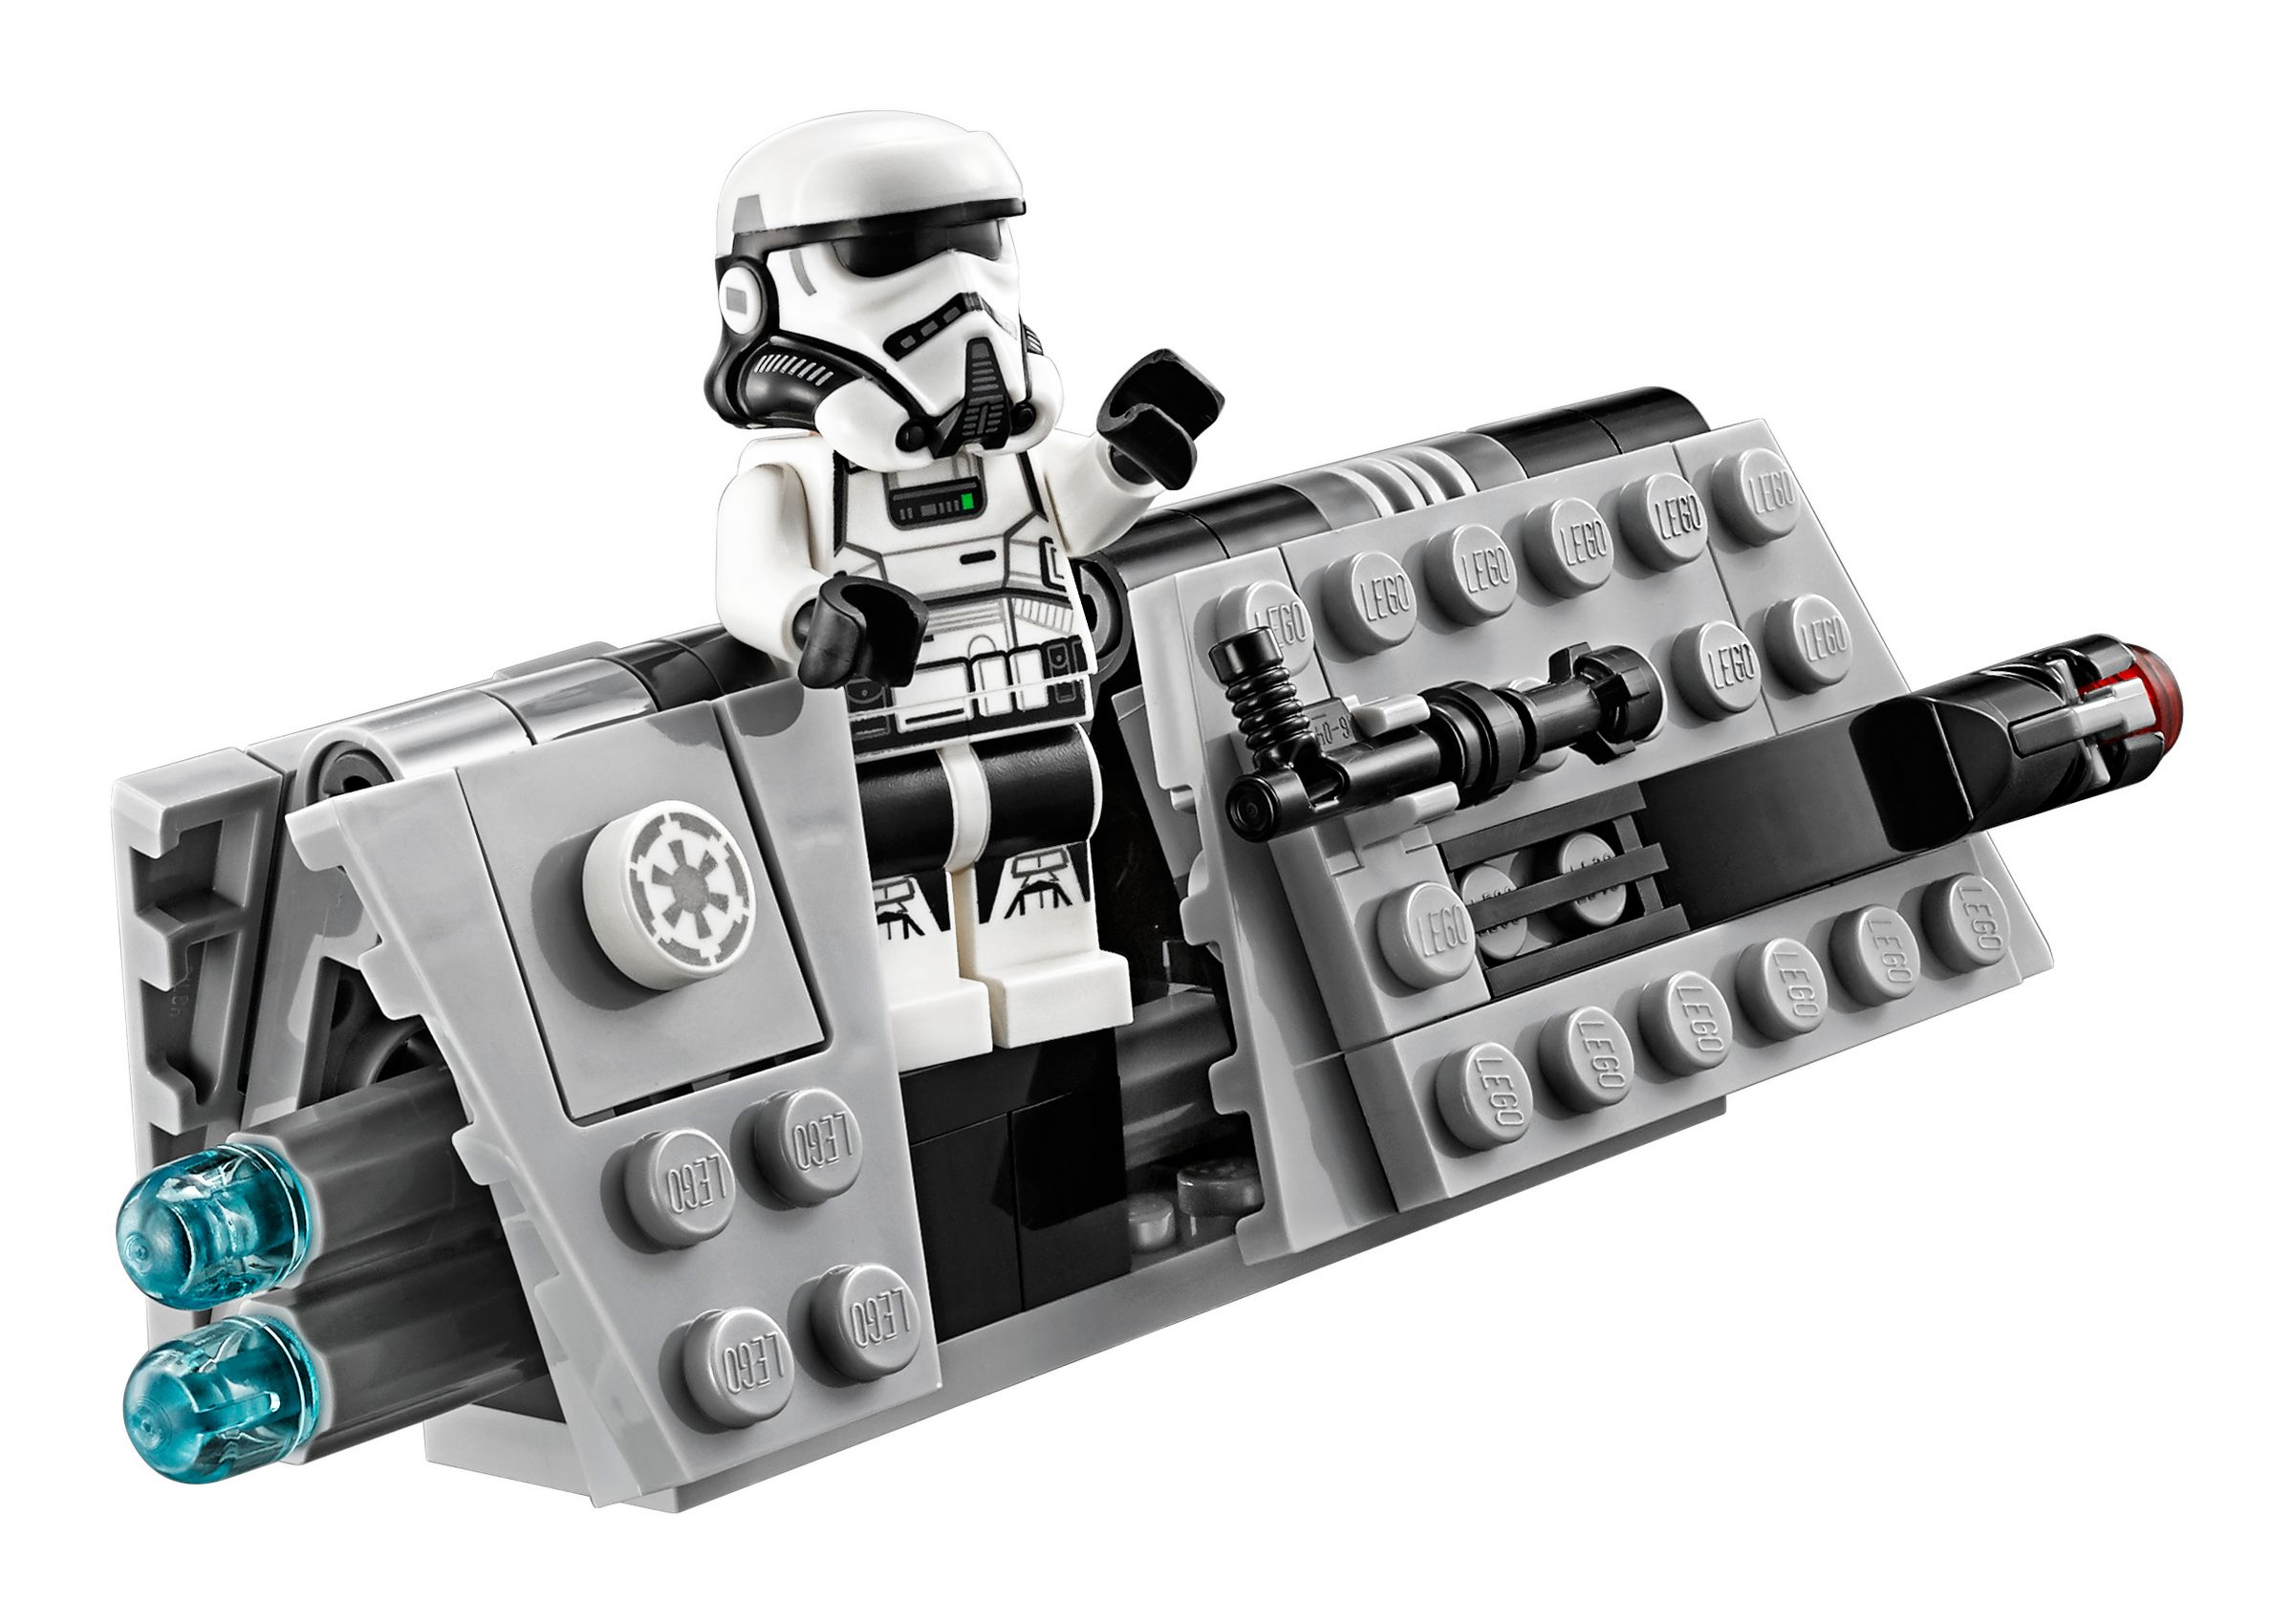 LEGO Star Wars 75207 Imperial Patrol Battle Pack LEGO_75207_alt3.jpg